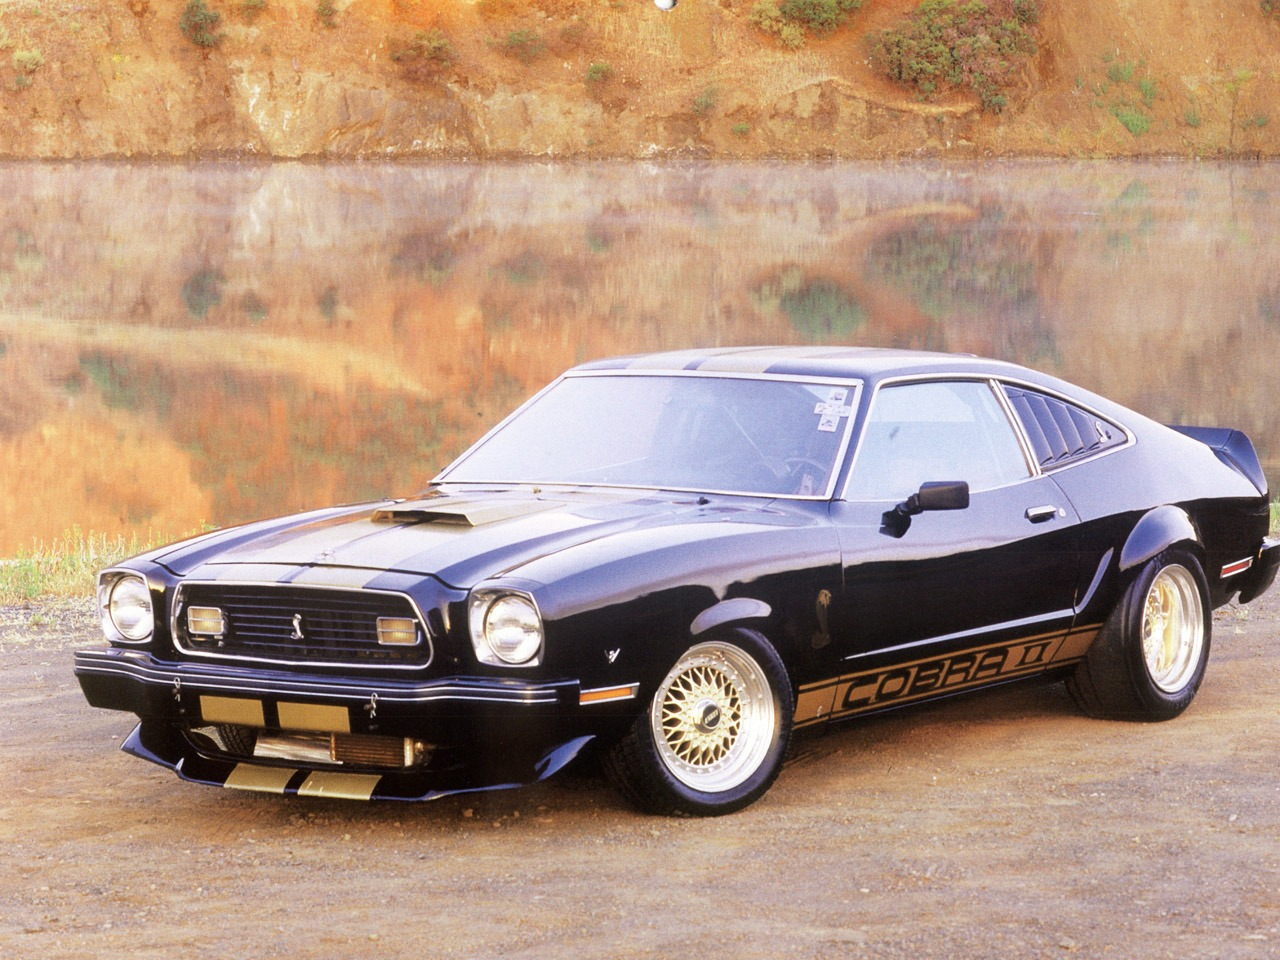 ford mustang photo gallery 1977 mustang cobra ii. Black Bedroom Furniture Sets. Home Design Ideas